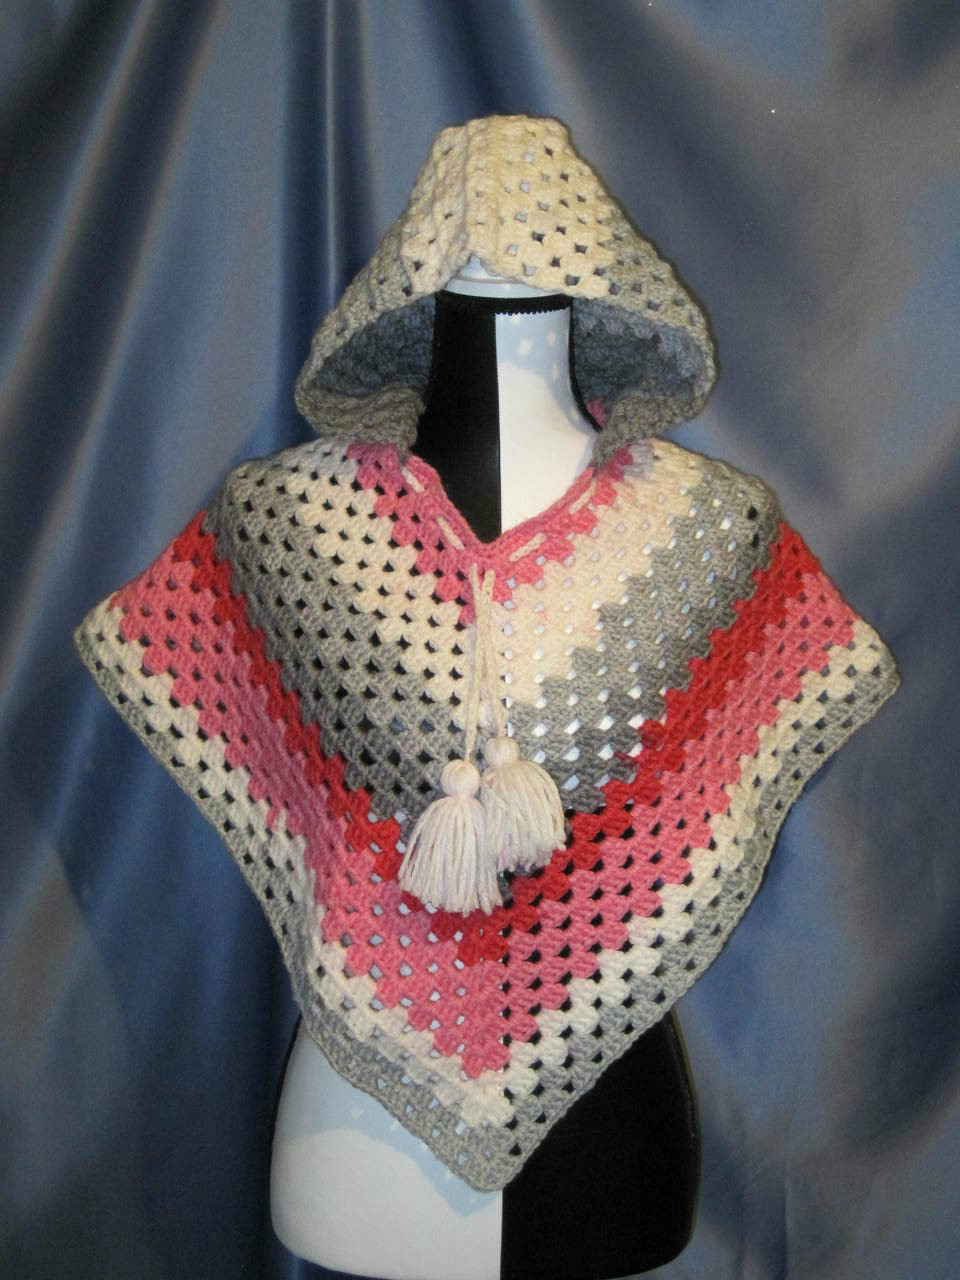 Granny Stitch Poncho with Hood in Pink, Grey and White.